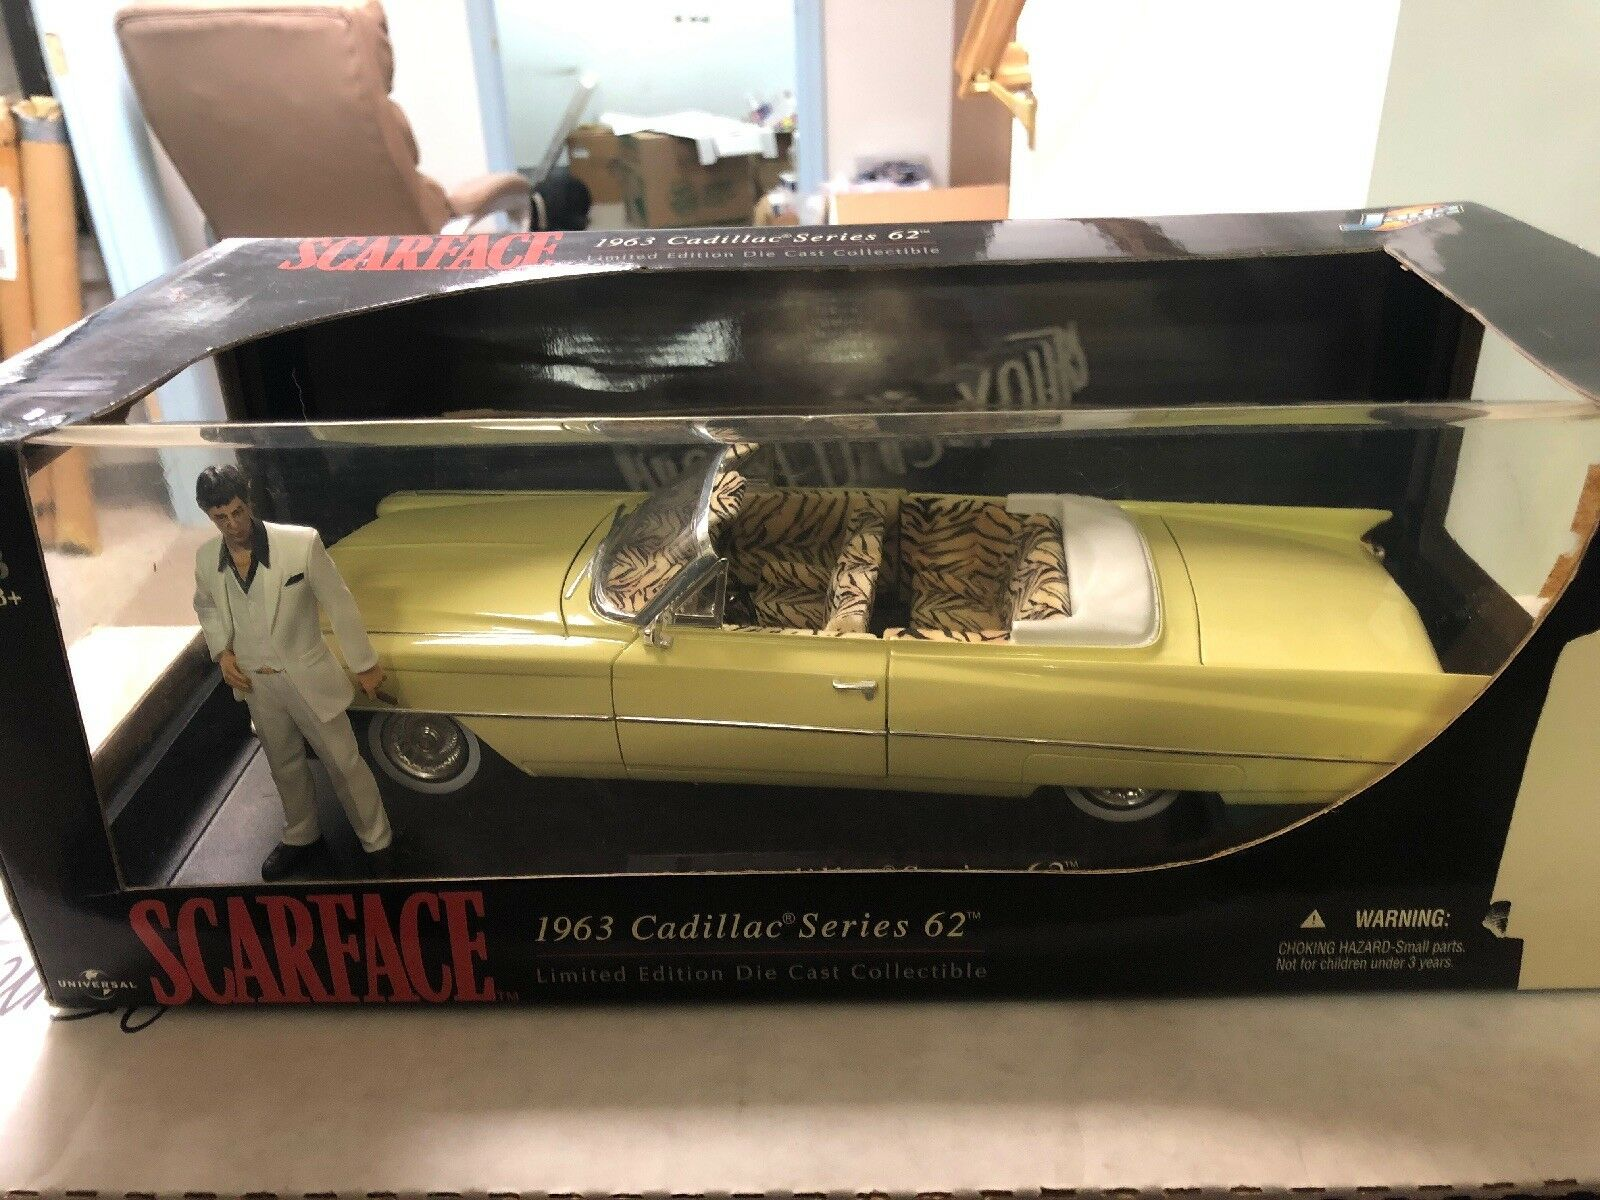 Scarface 1963 Cadillac Series 62 62 62 Limited Edition 1:18 Scale Die Cast NEW Jada 282500